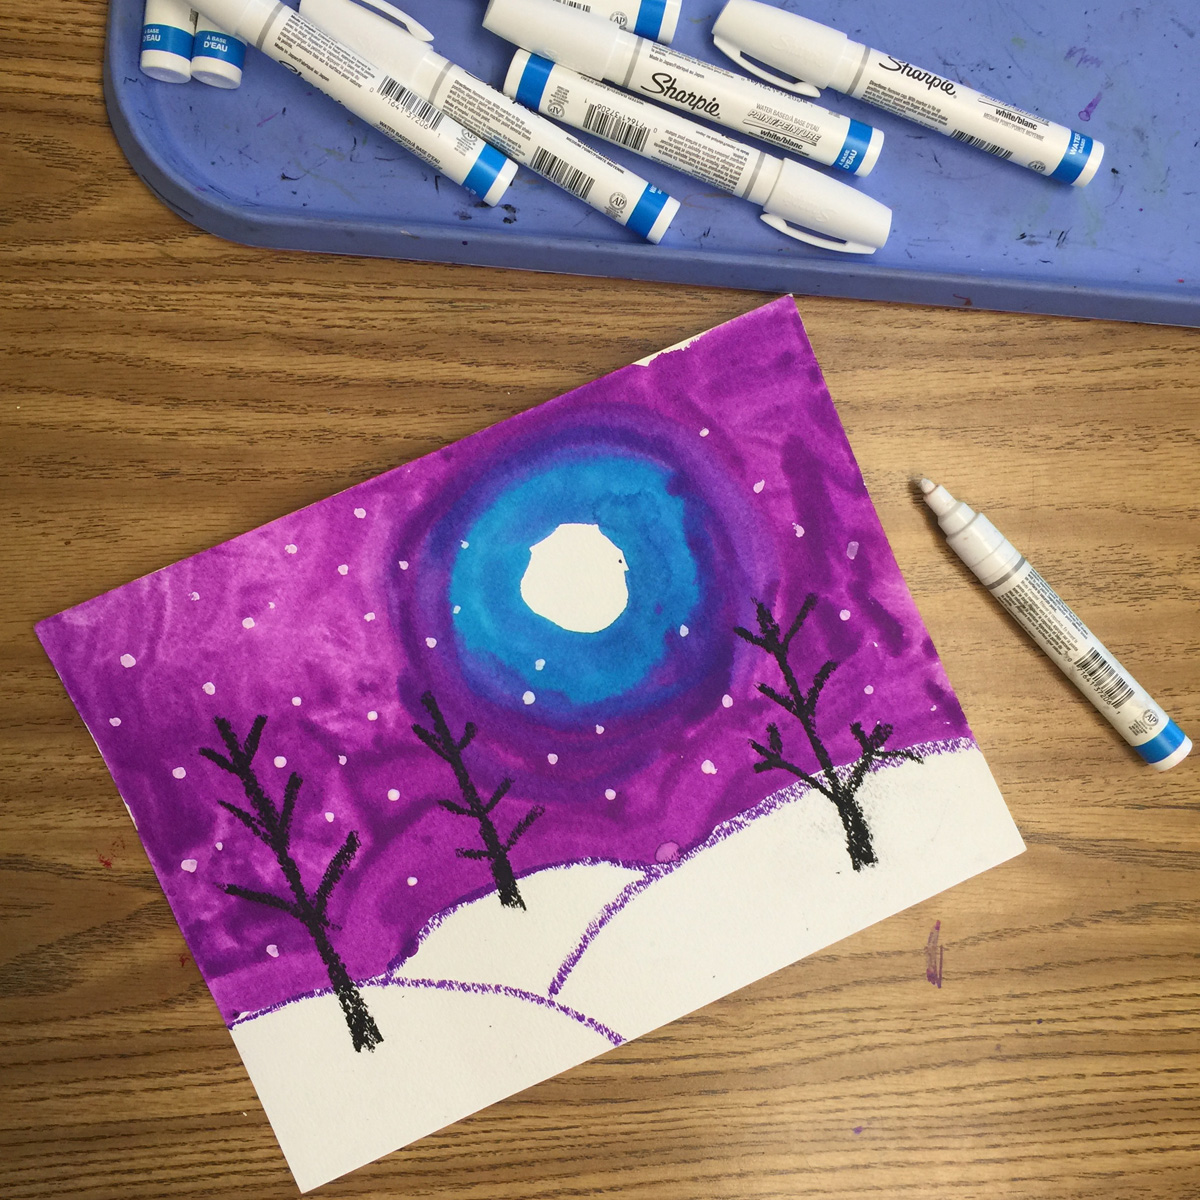 Students Finished Their Snowy Landscapes With The Perfect Tool Sharpie Paint Markers Allowed All Art To Easily Get A Delicate Sprinkling Of Snow